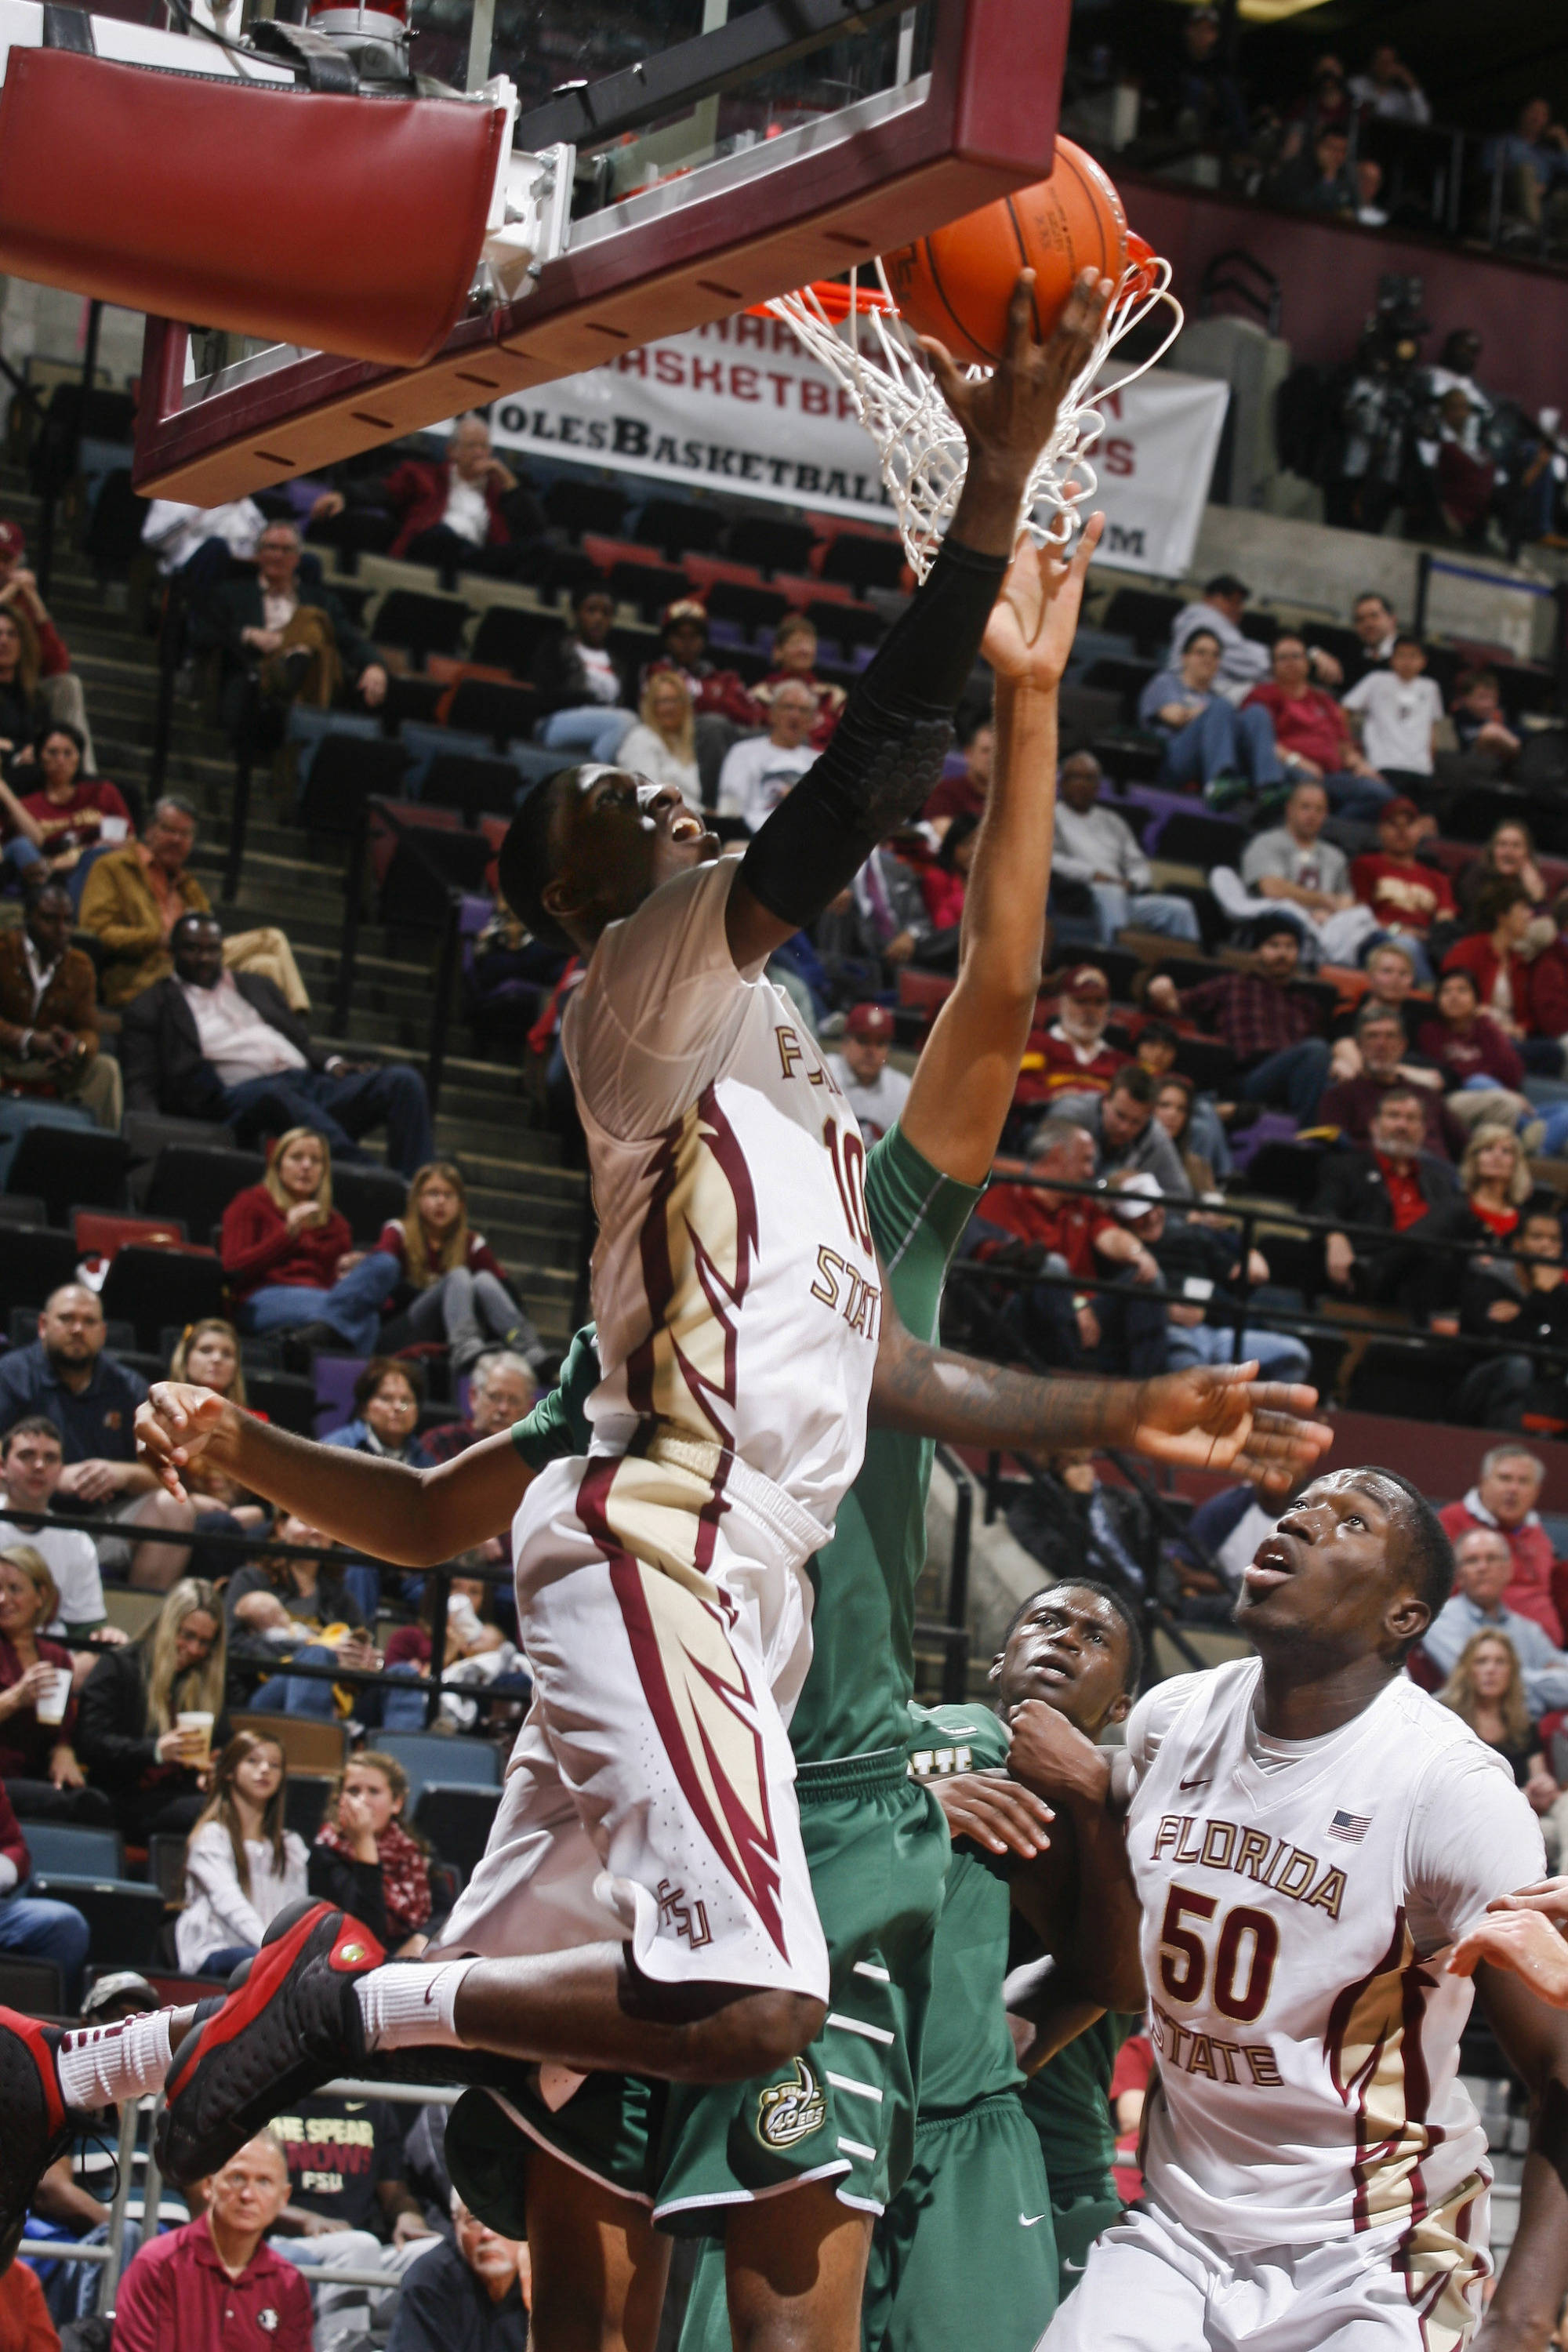 Dec 17, 2013; Tallahassee, FL, USA; Florida State Seminoles forward Okaro White (10) makes a reverse layup as he is fouled in the second half of their game against the Charlotte 49ers at the Donald L. Tucker Center. The Florida State Seminoles beat the Charlotte 49ers 106-62. Mandatory Credit: Phil Sears-USA TODAY Sports